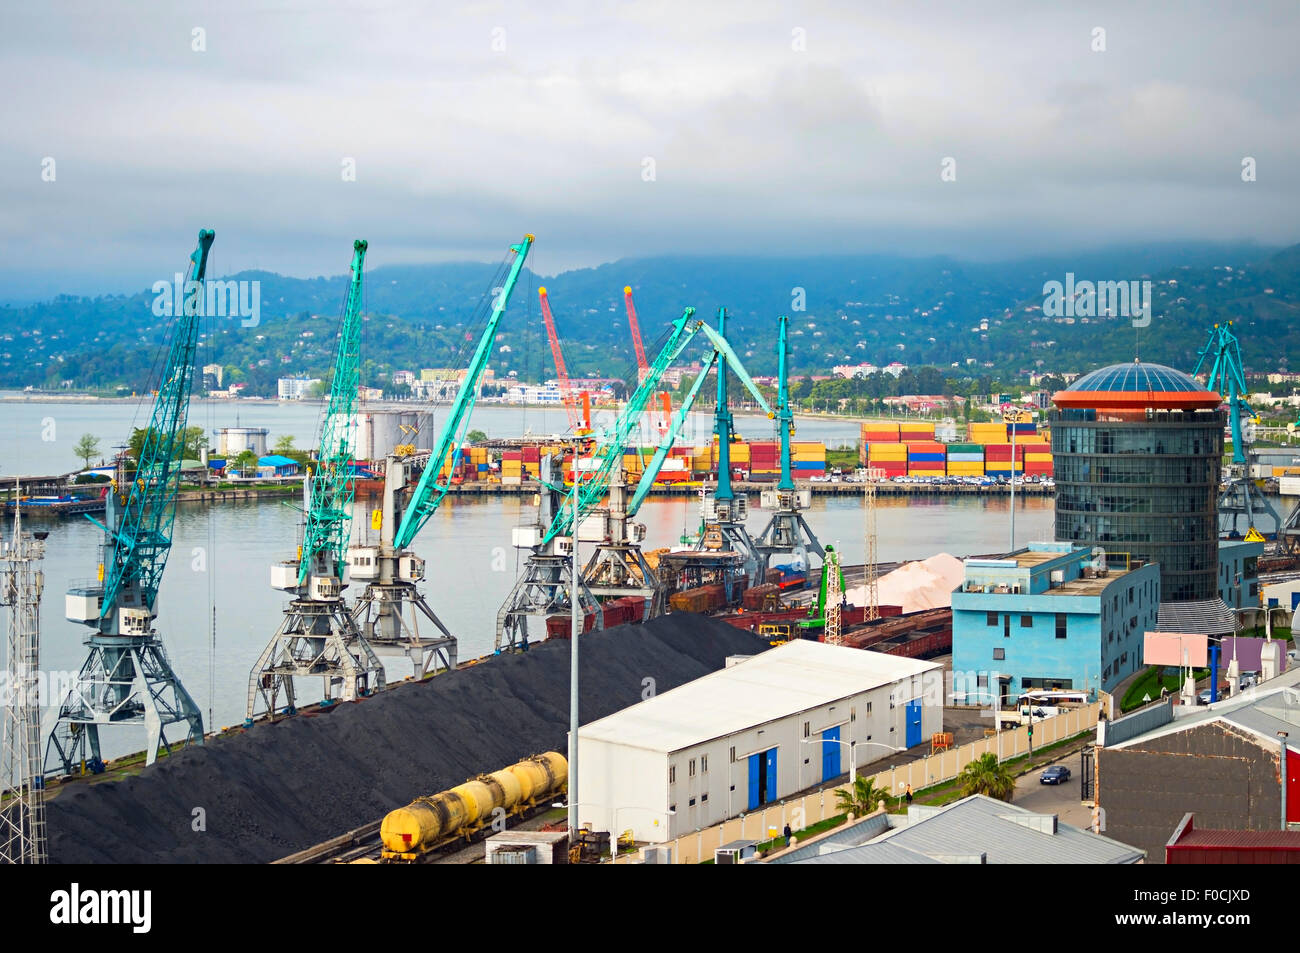 Aerial view of Batumi industrial sea port. Georgia - Stock Image